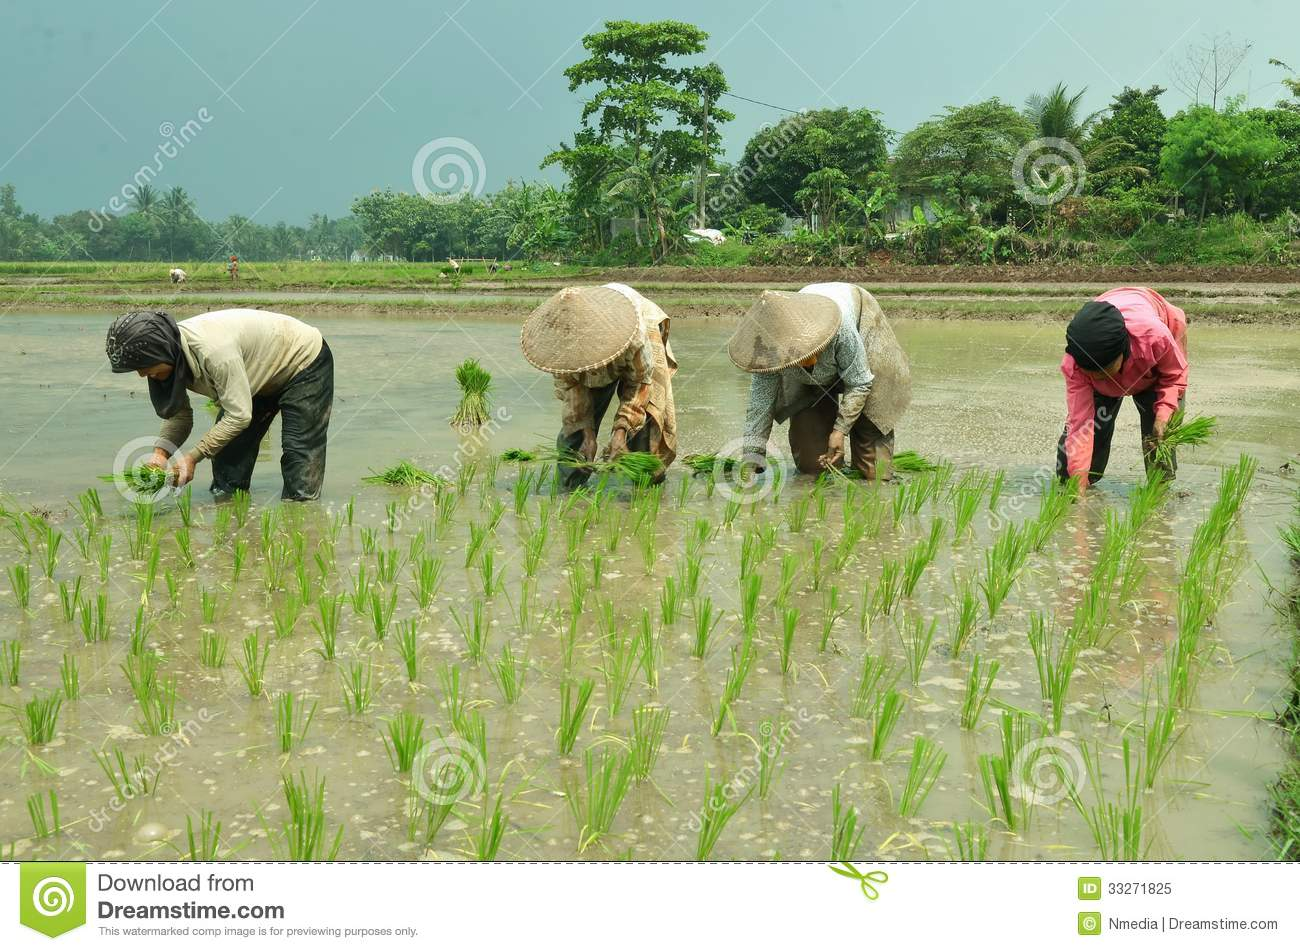 Agriculture related images women working on rice field picture taken